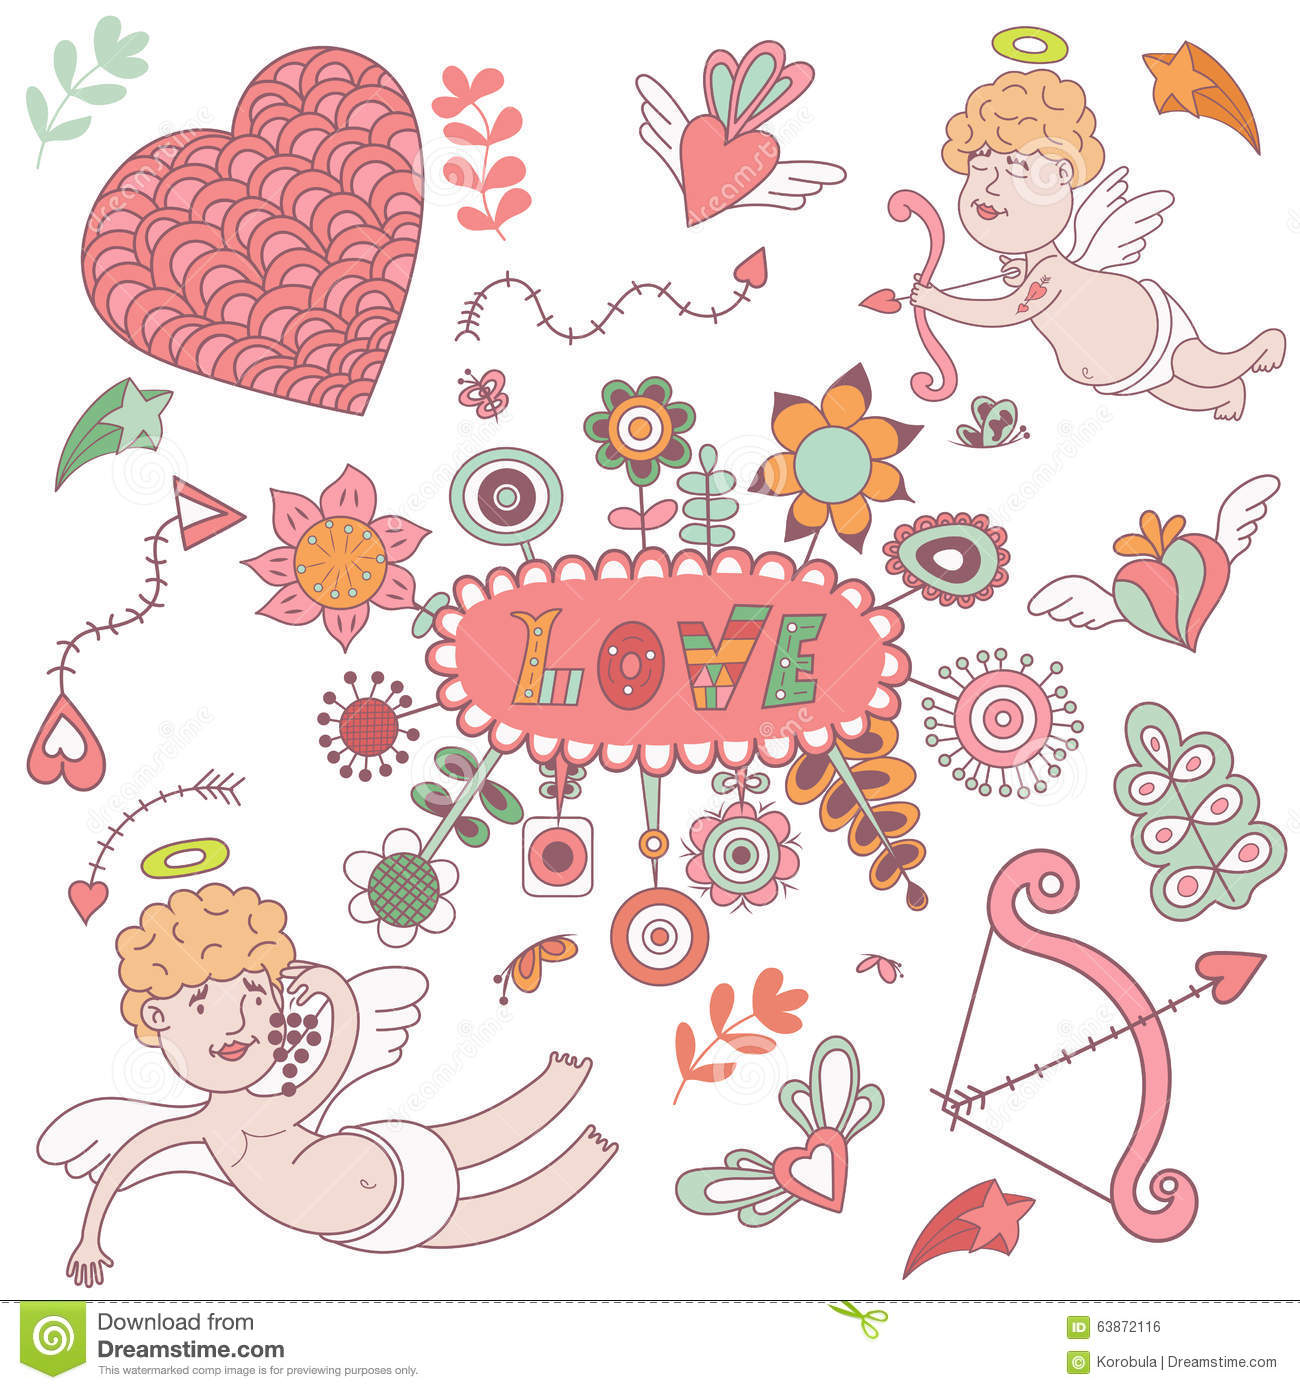 Greeting card for Valentines day with cute angels.